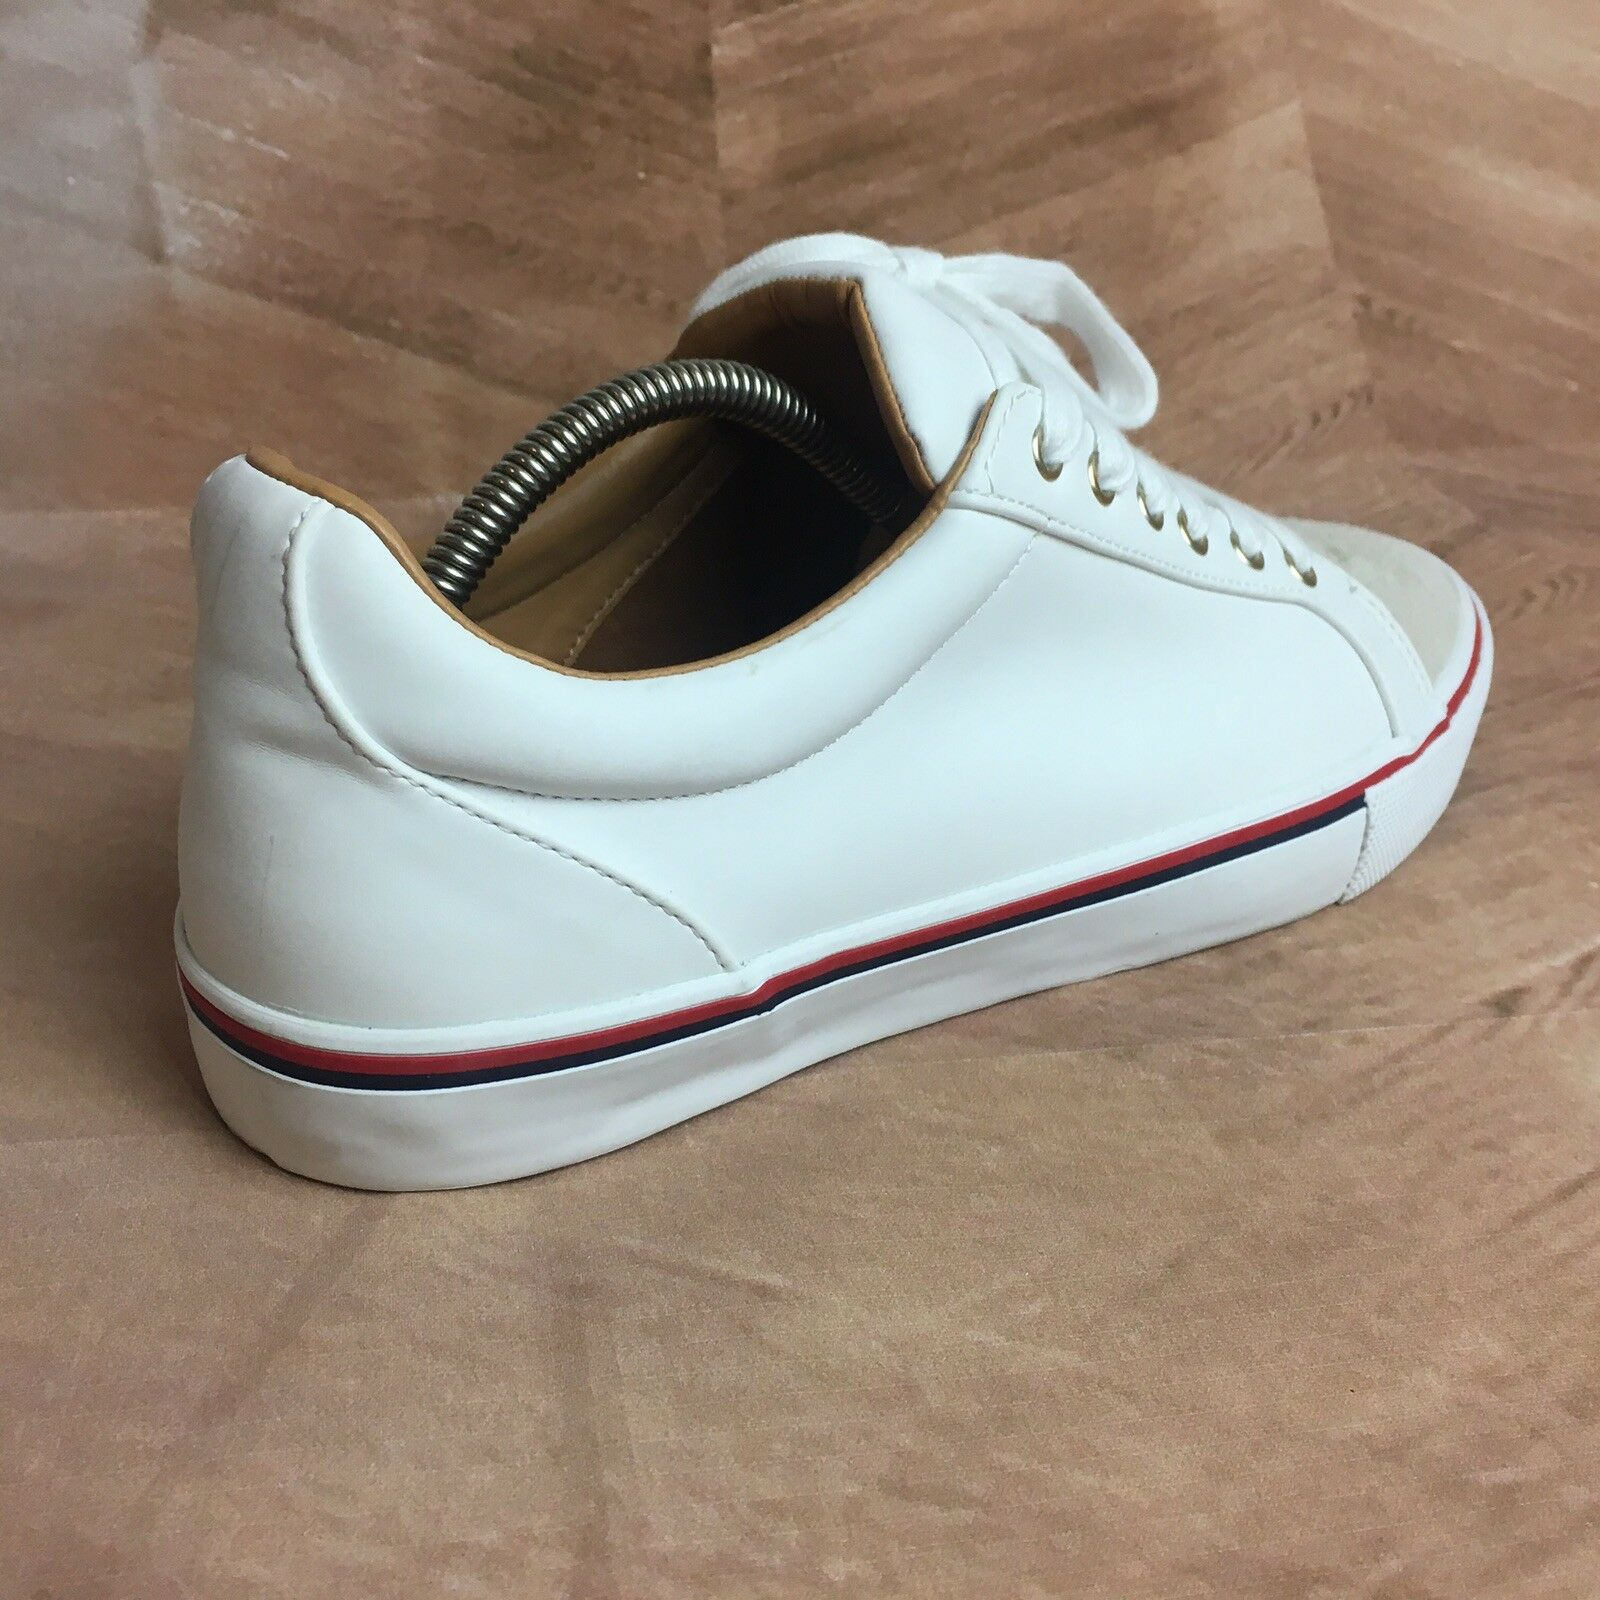 Men's Zara Fabric Athletic Sneakers shoes, White Tan Lace Up Size 43 EUR